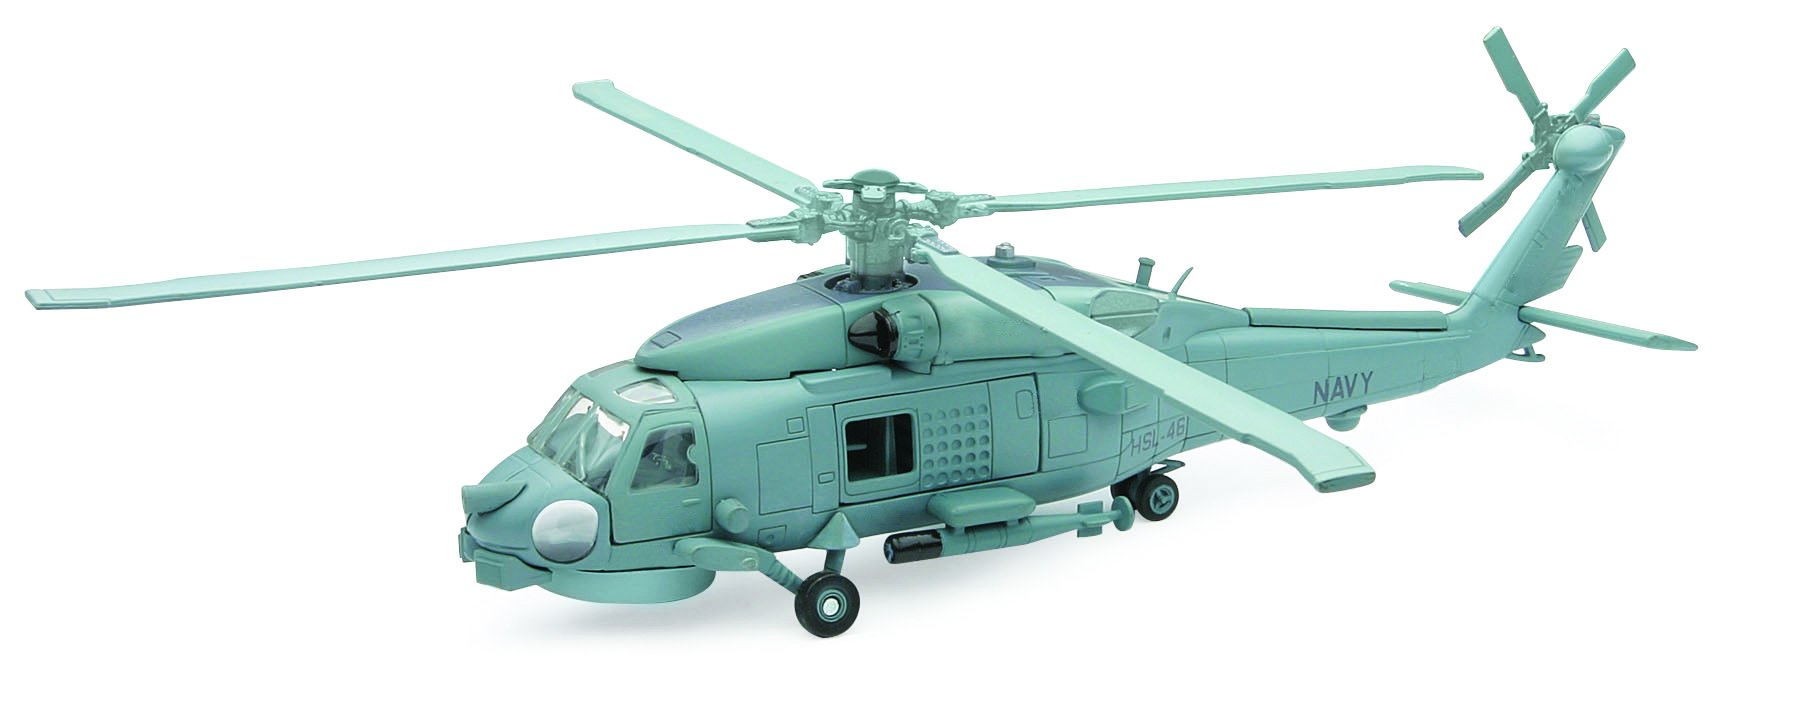 New Ray Newray - 25583 - Helicoptère Sikorsky SH60 - Die Cast - 31 ''/1/60